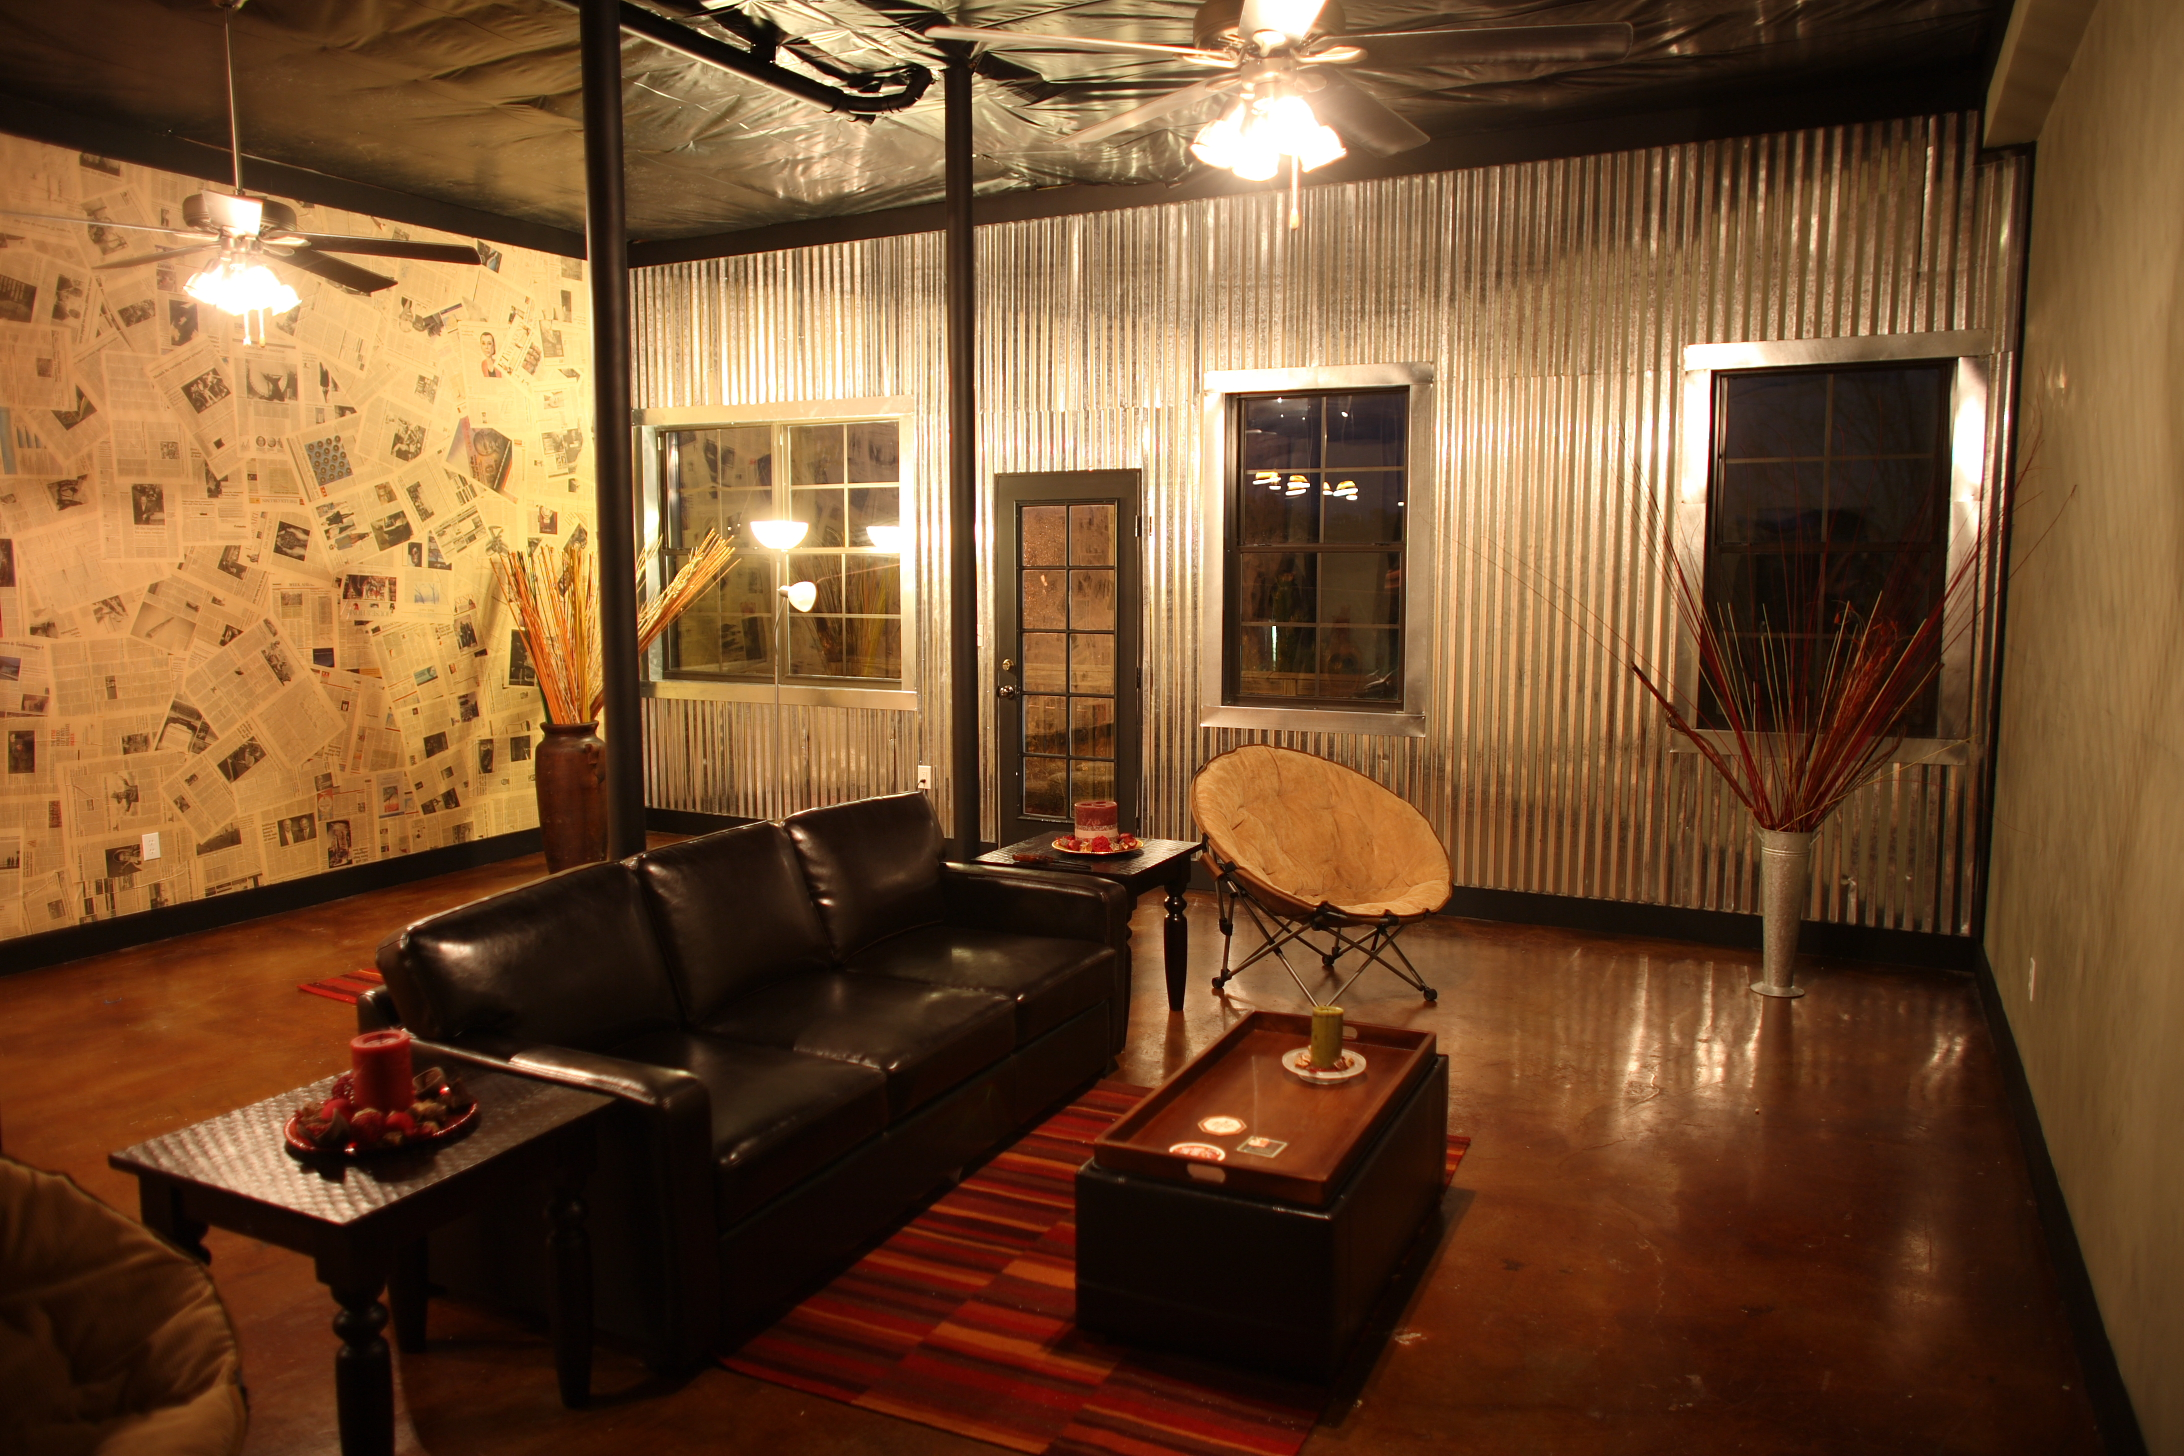 Corrugated metal wall in basement of Hoover townhome